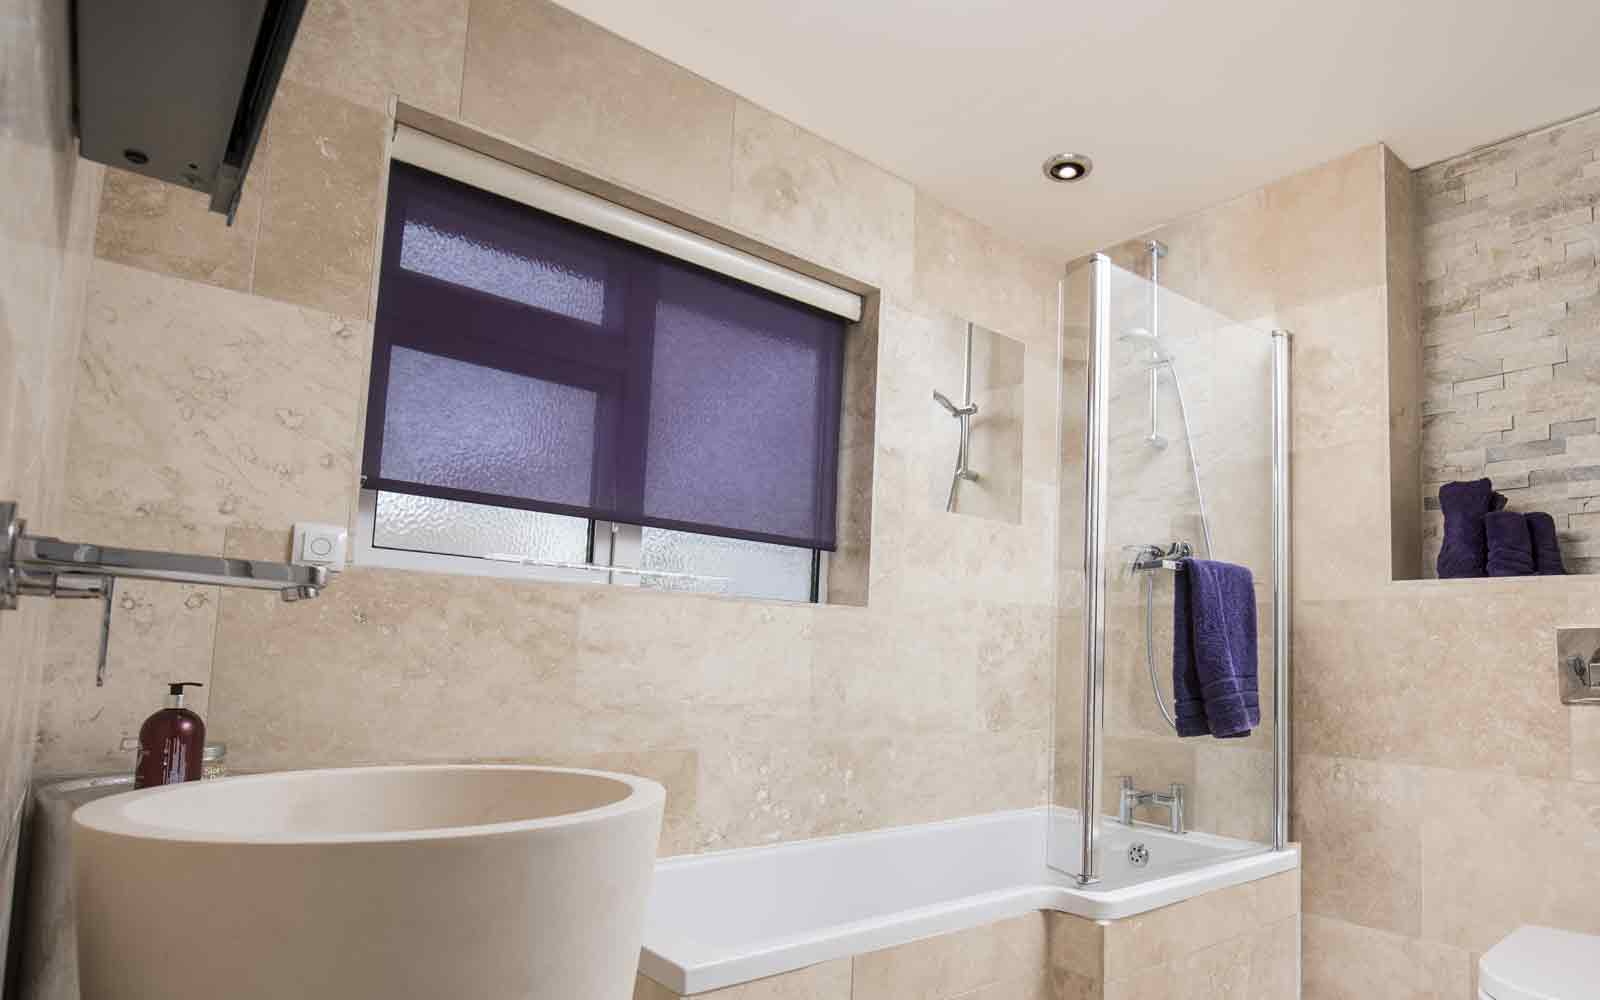 Voile Roller Blind in the bathroom